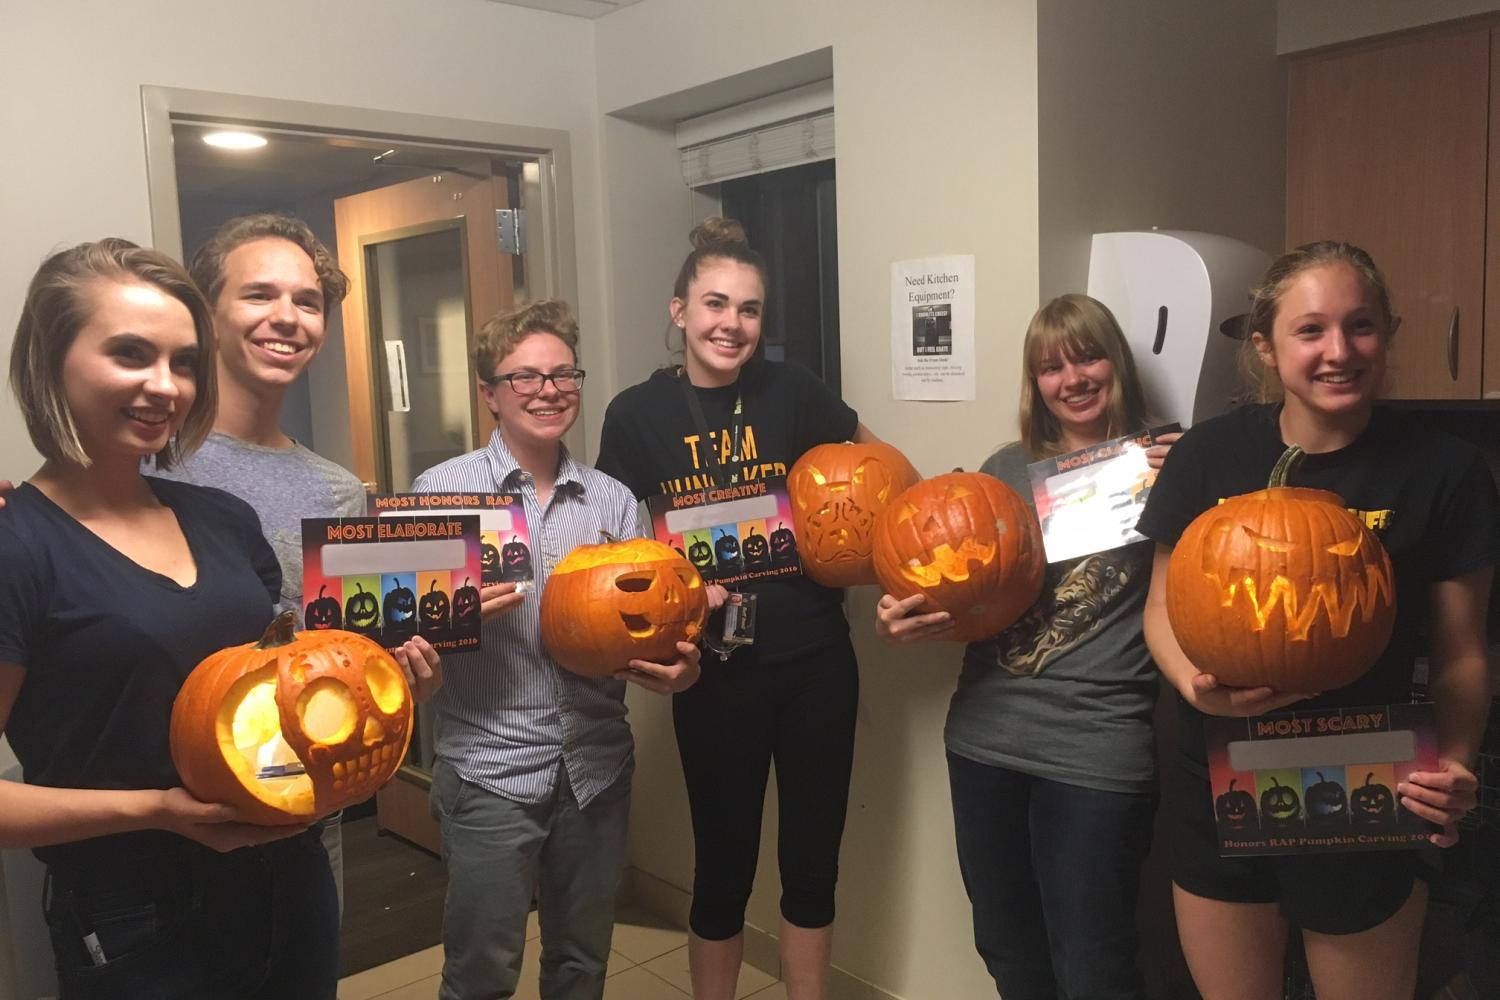 Students with pumpkin carving certificates